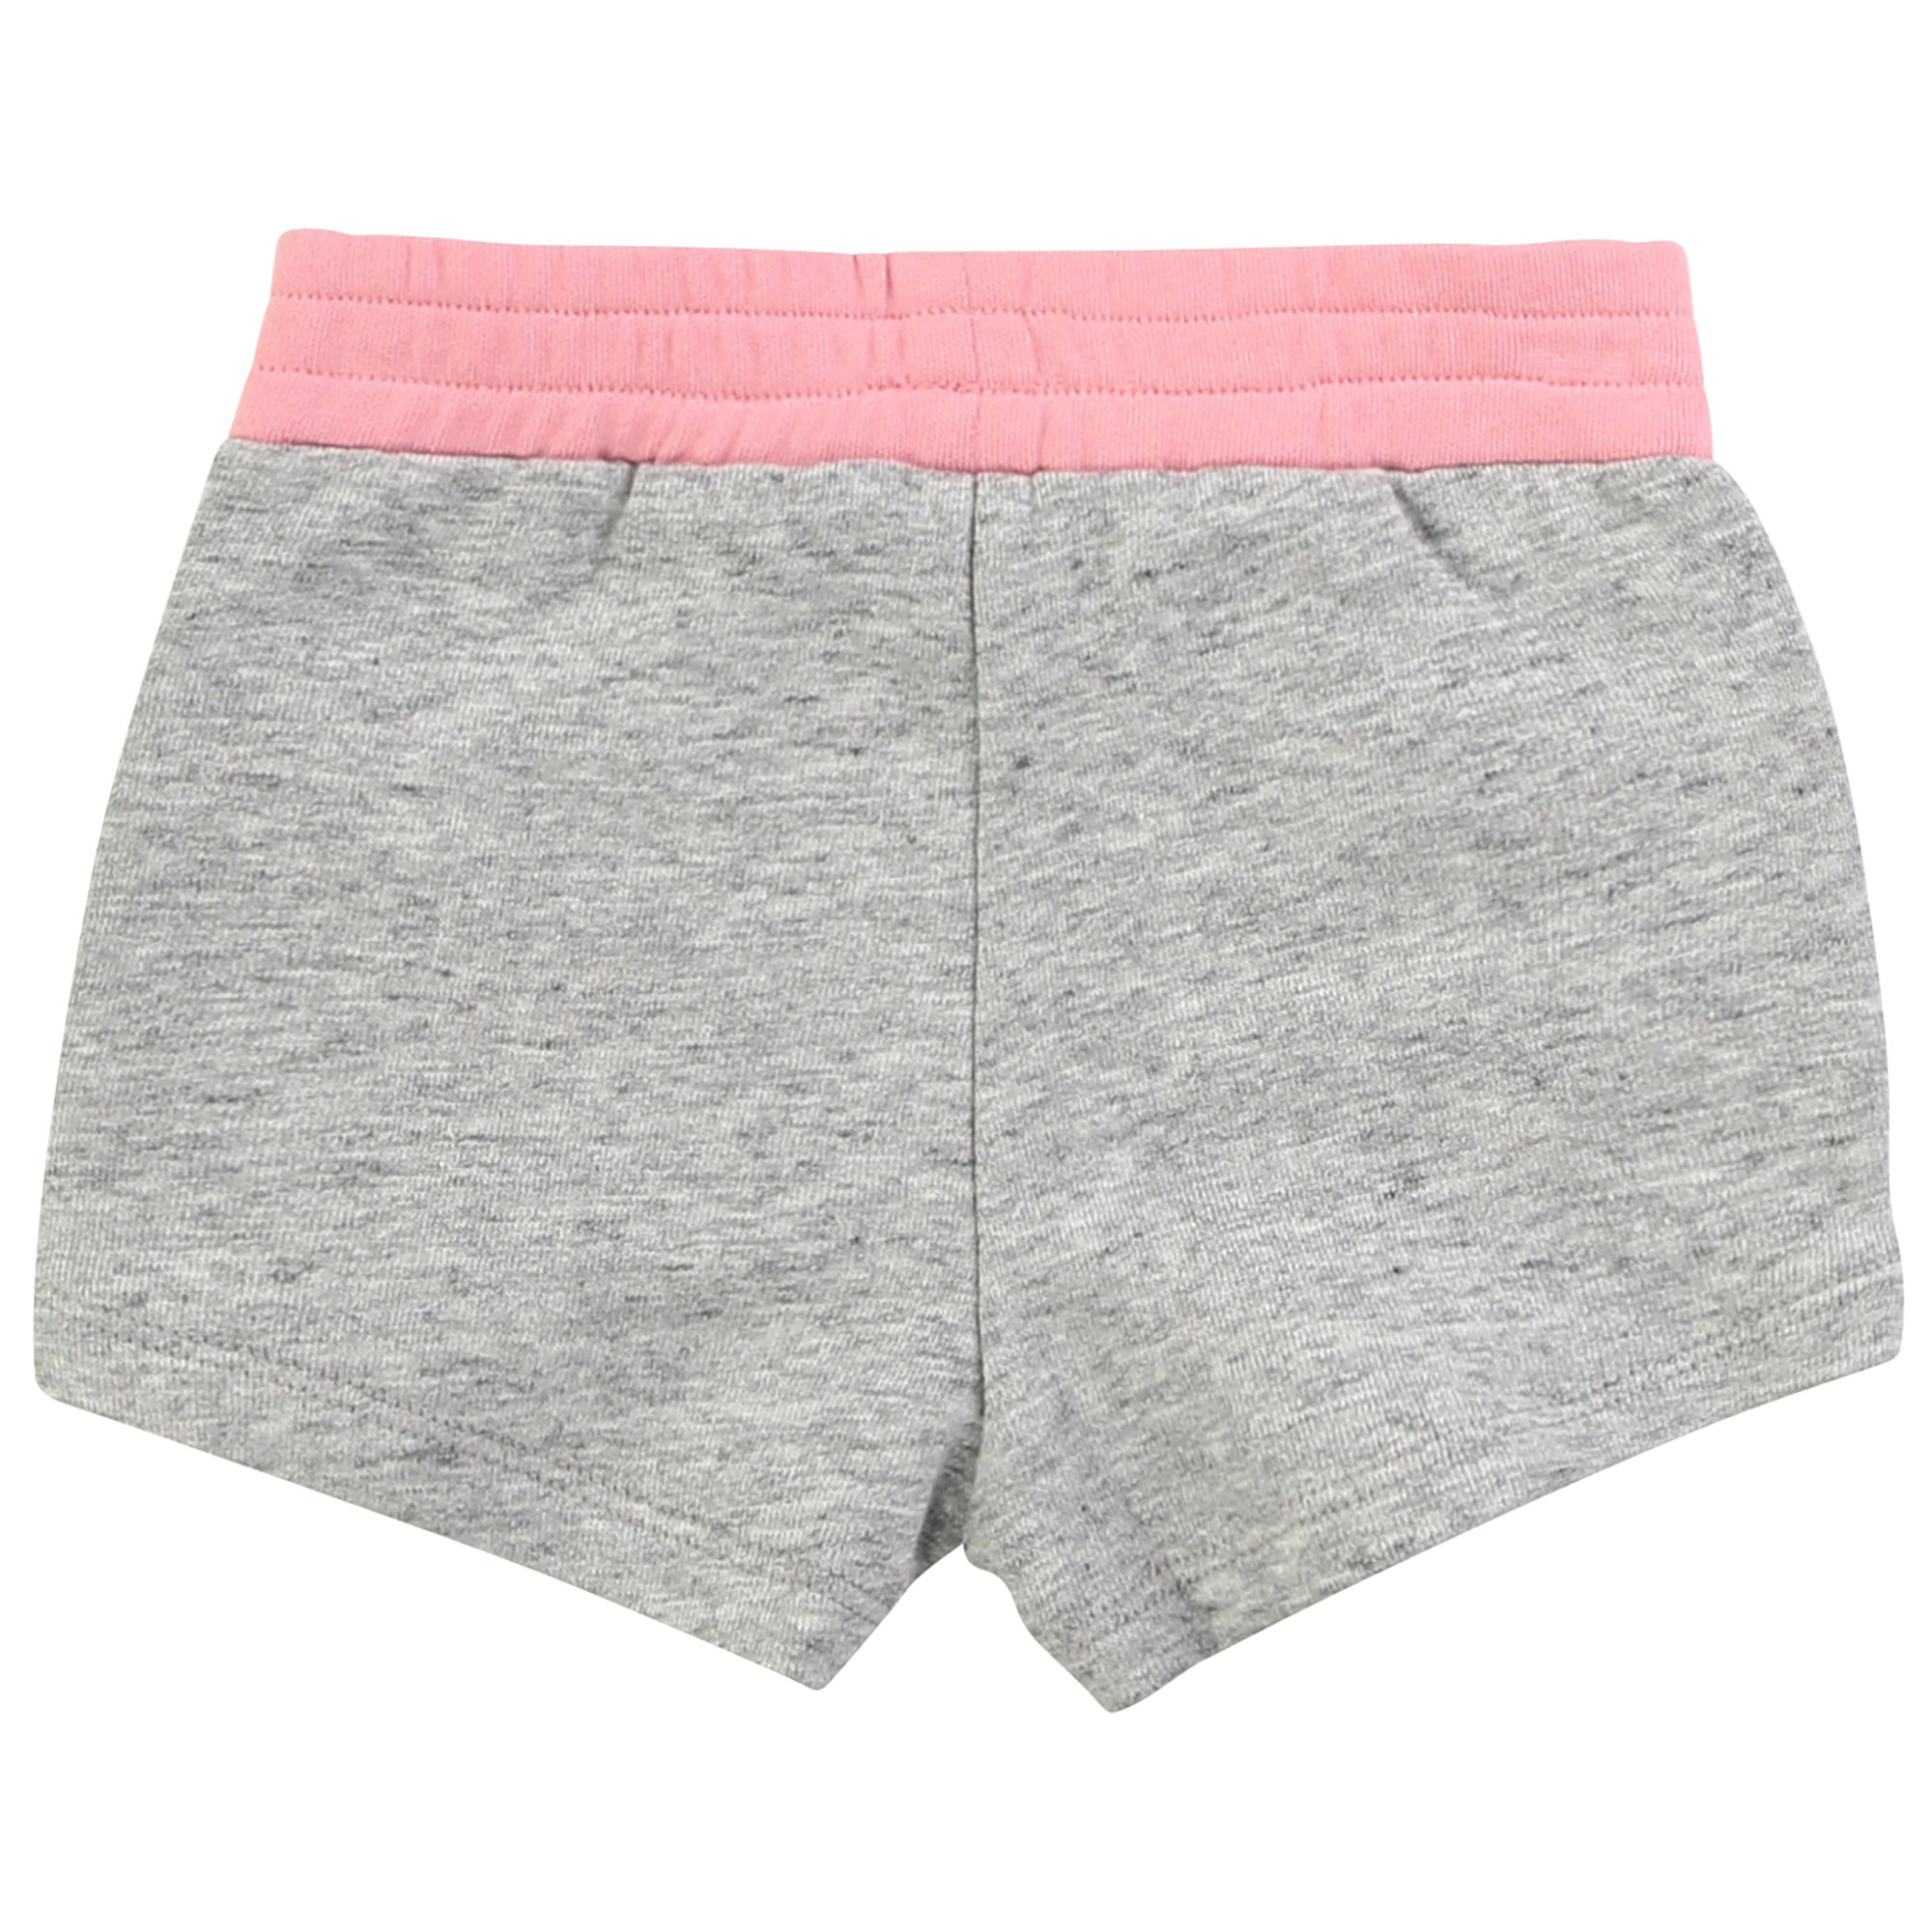 Shorts con tasche volant THE MARC JACOBS Per BAMBINA